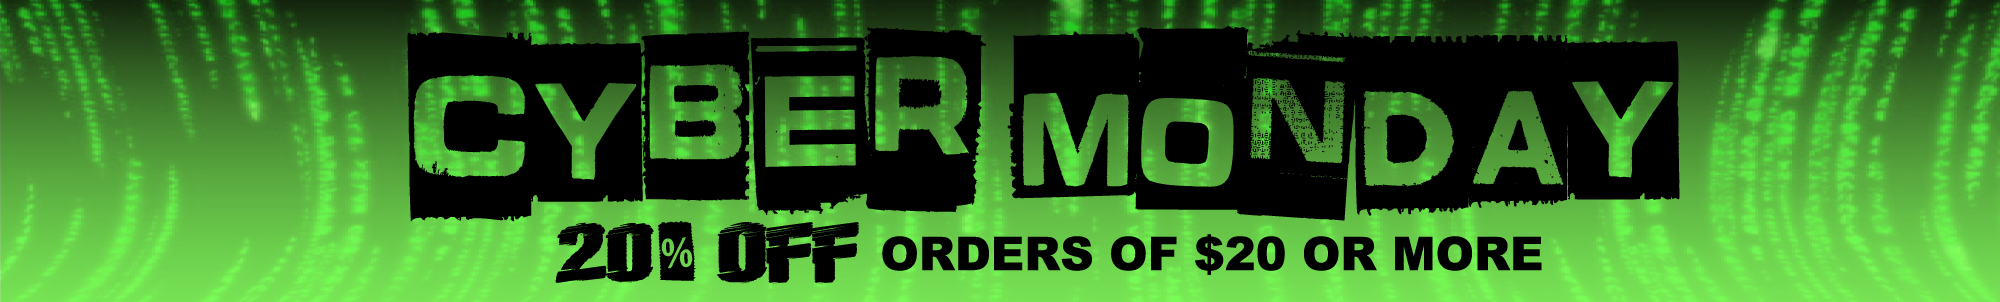 cyber-monday-banner.png